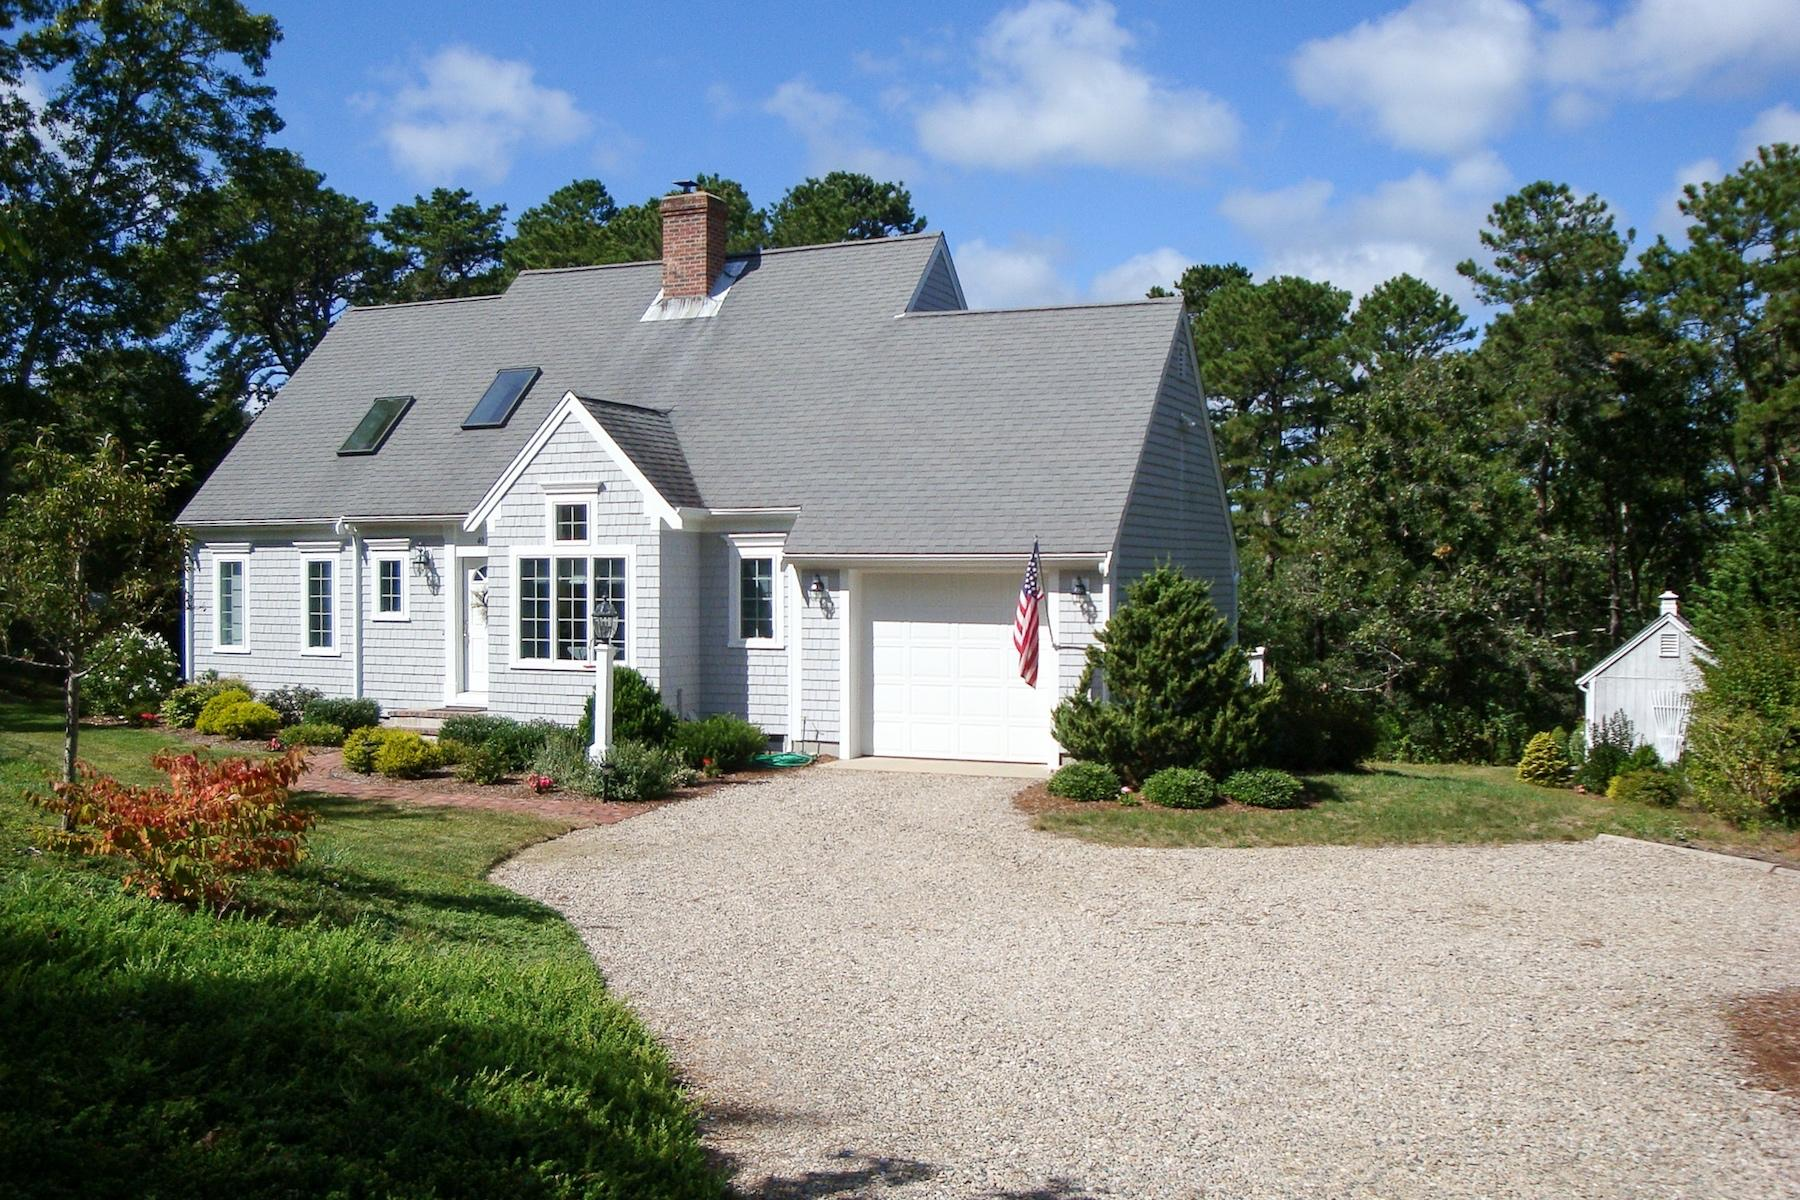 Casa Unifamiliar por un Venta en 40 Old Mill Way, Wellfleet, MA 40 Old Mill Way Wellfleet, Massachusetts 02667 Estados Unidos